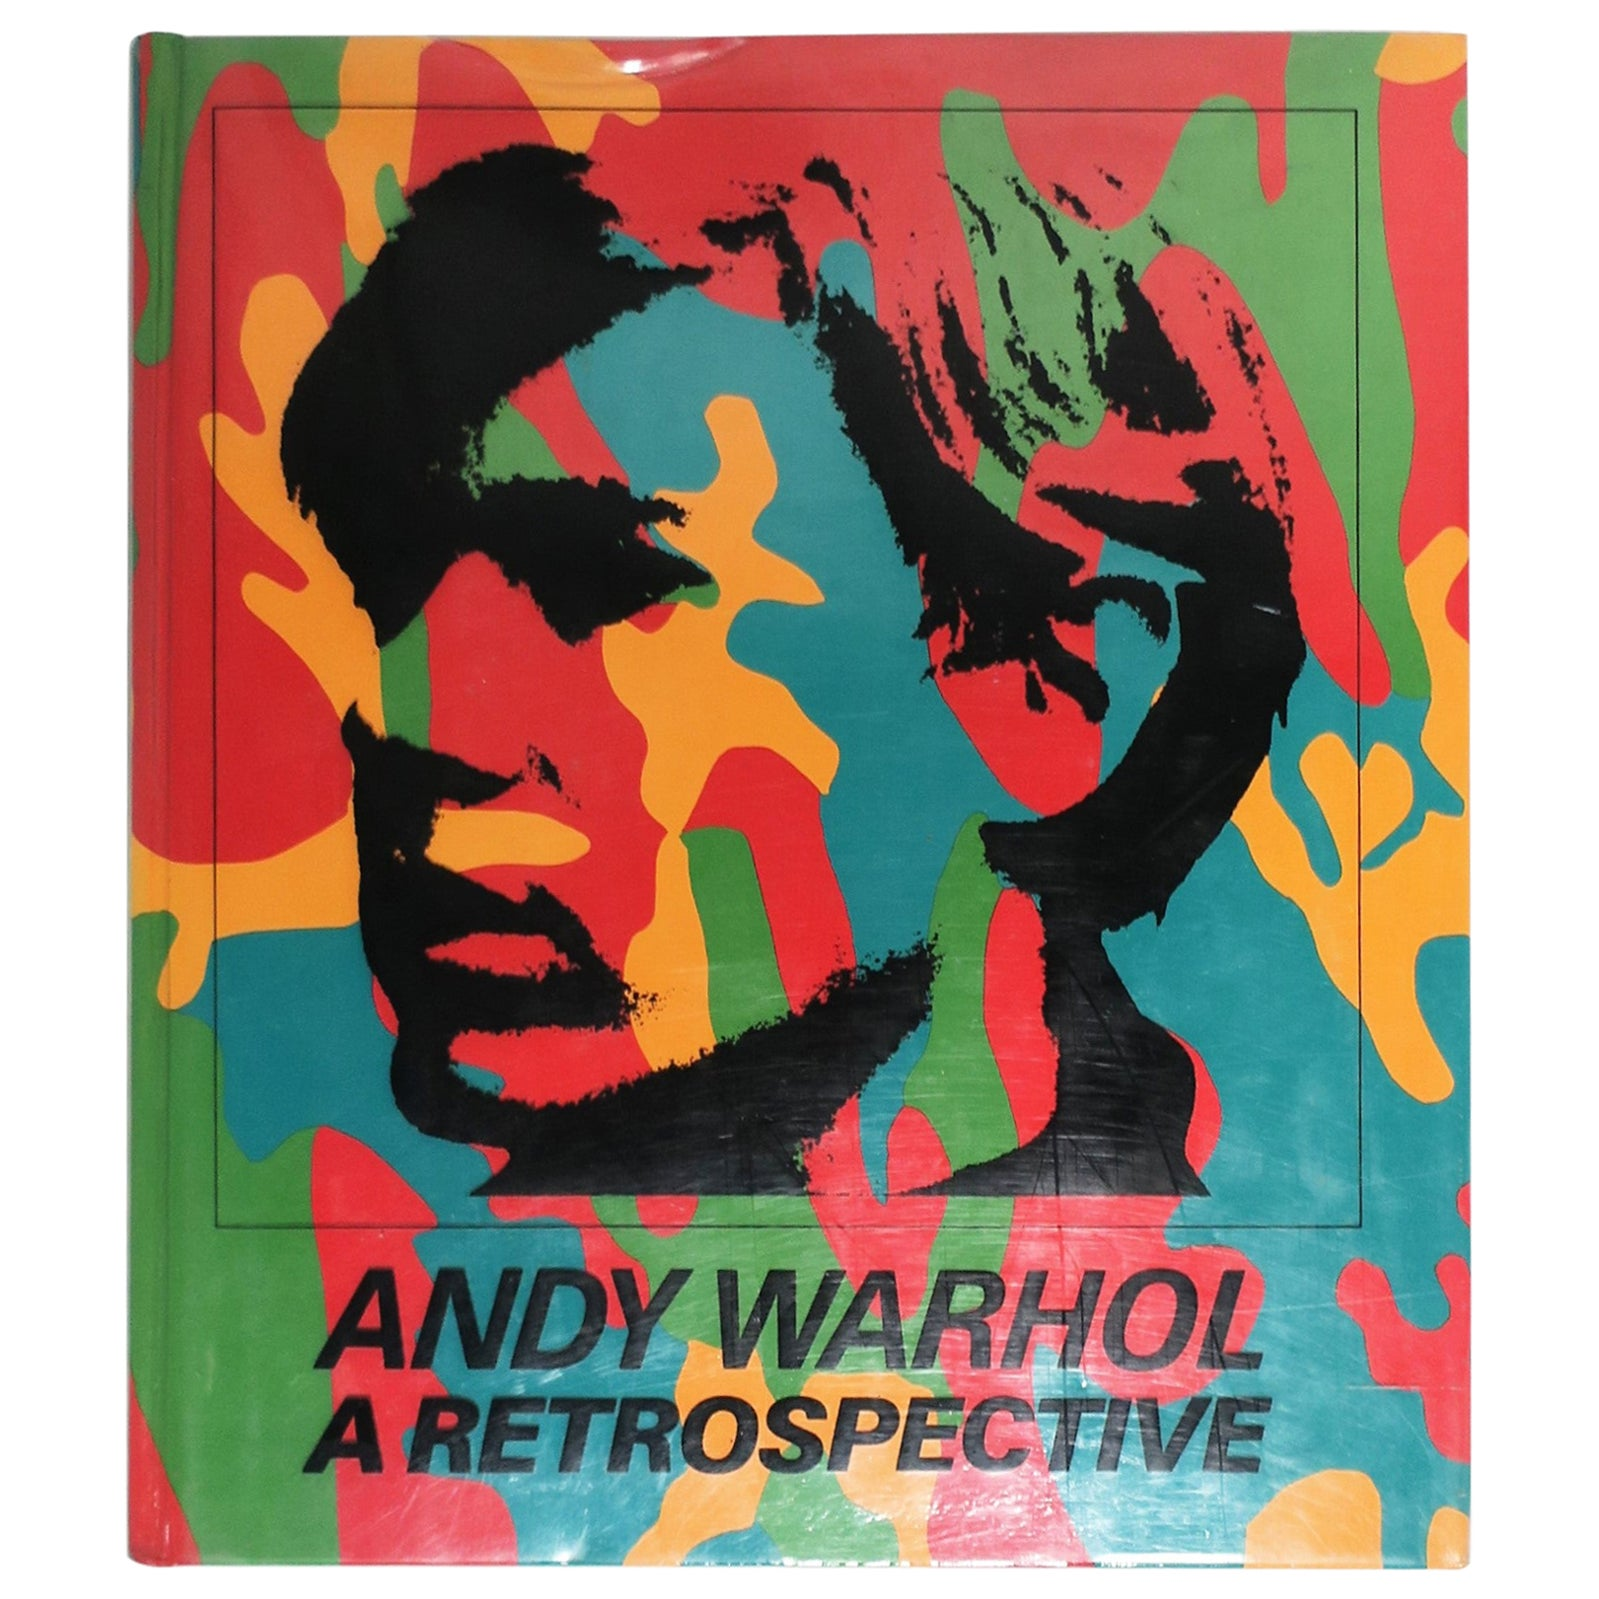 Andy Warhol A Retrospective Hard-Cover Library or Coffee Table Book, 1989